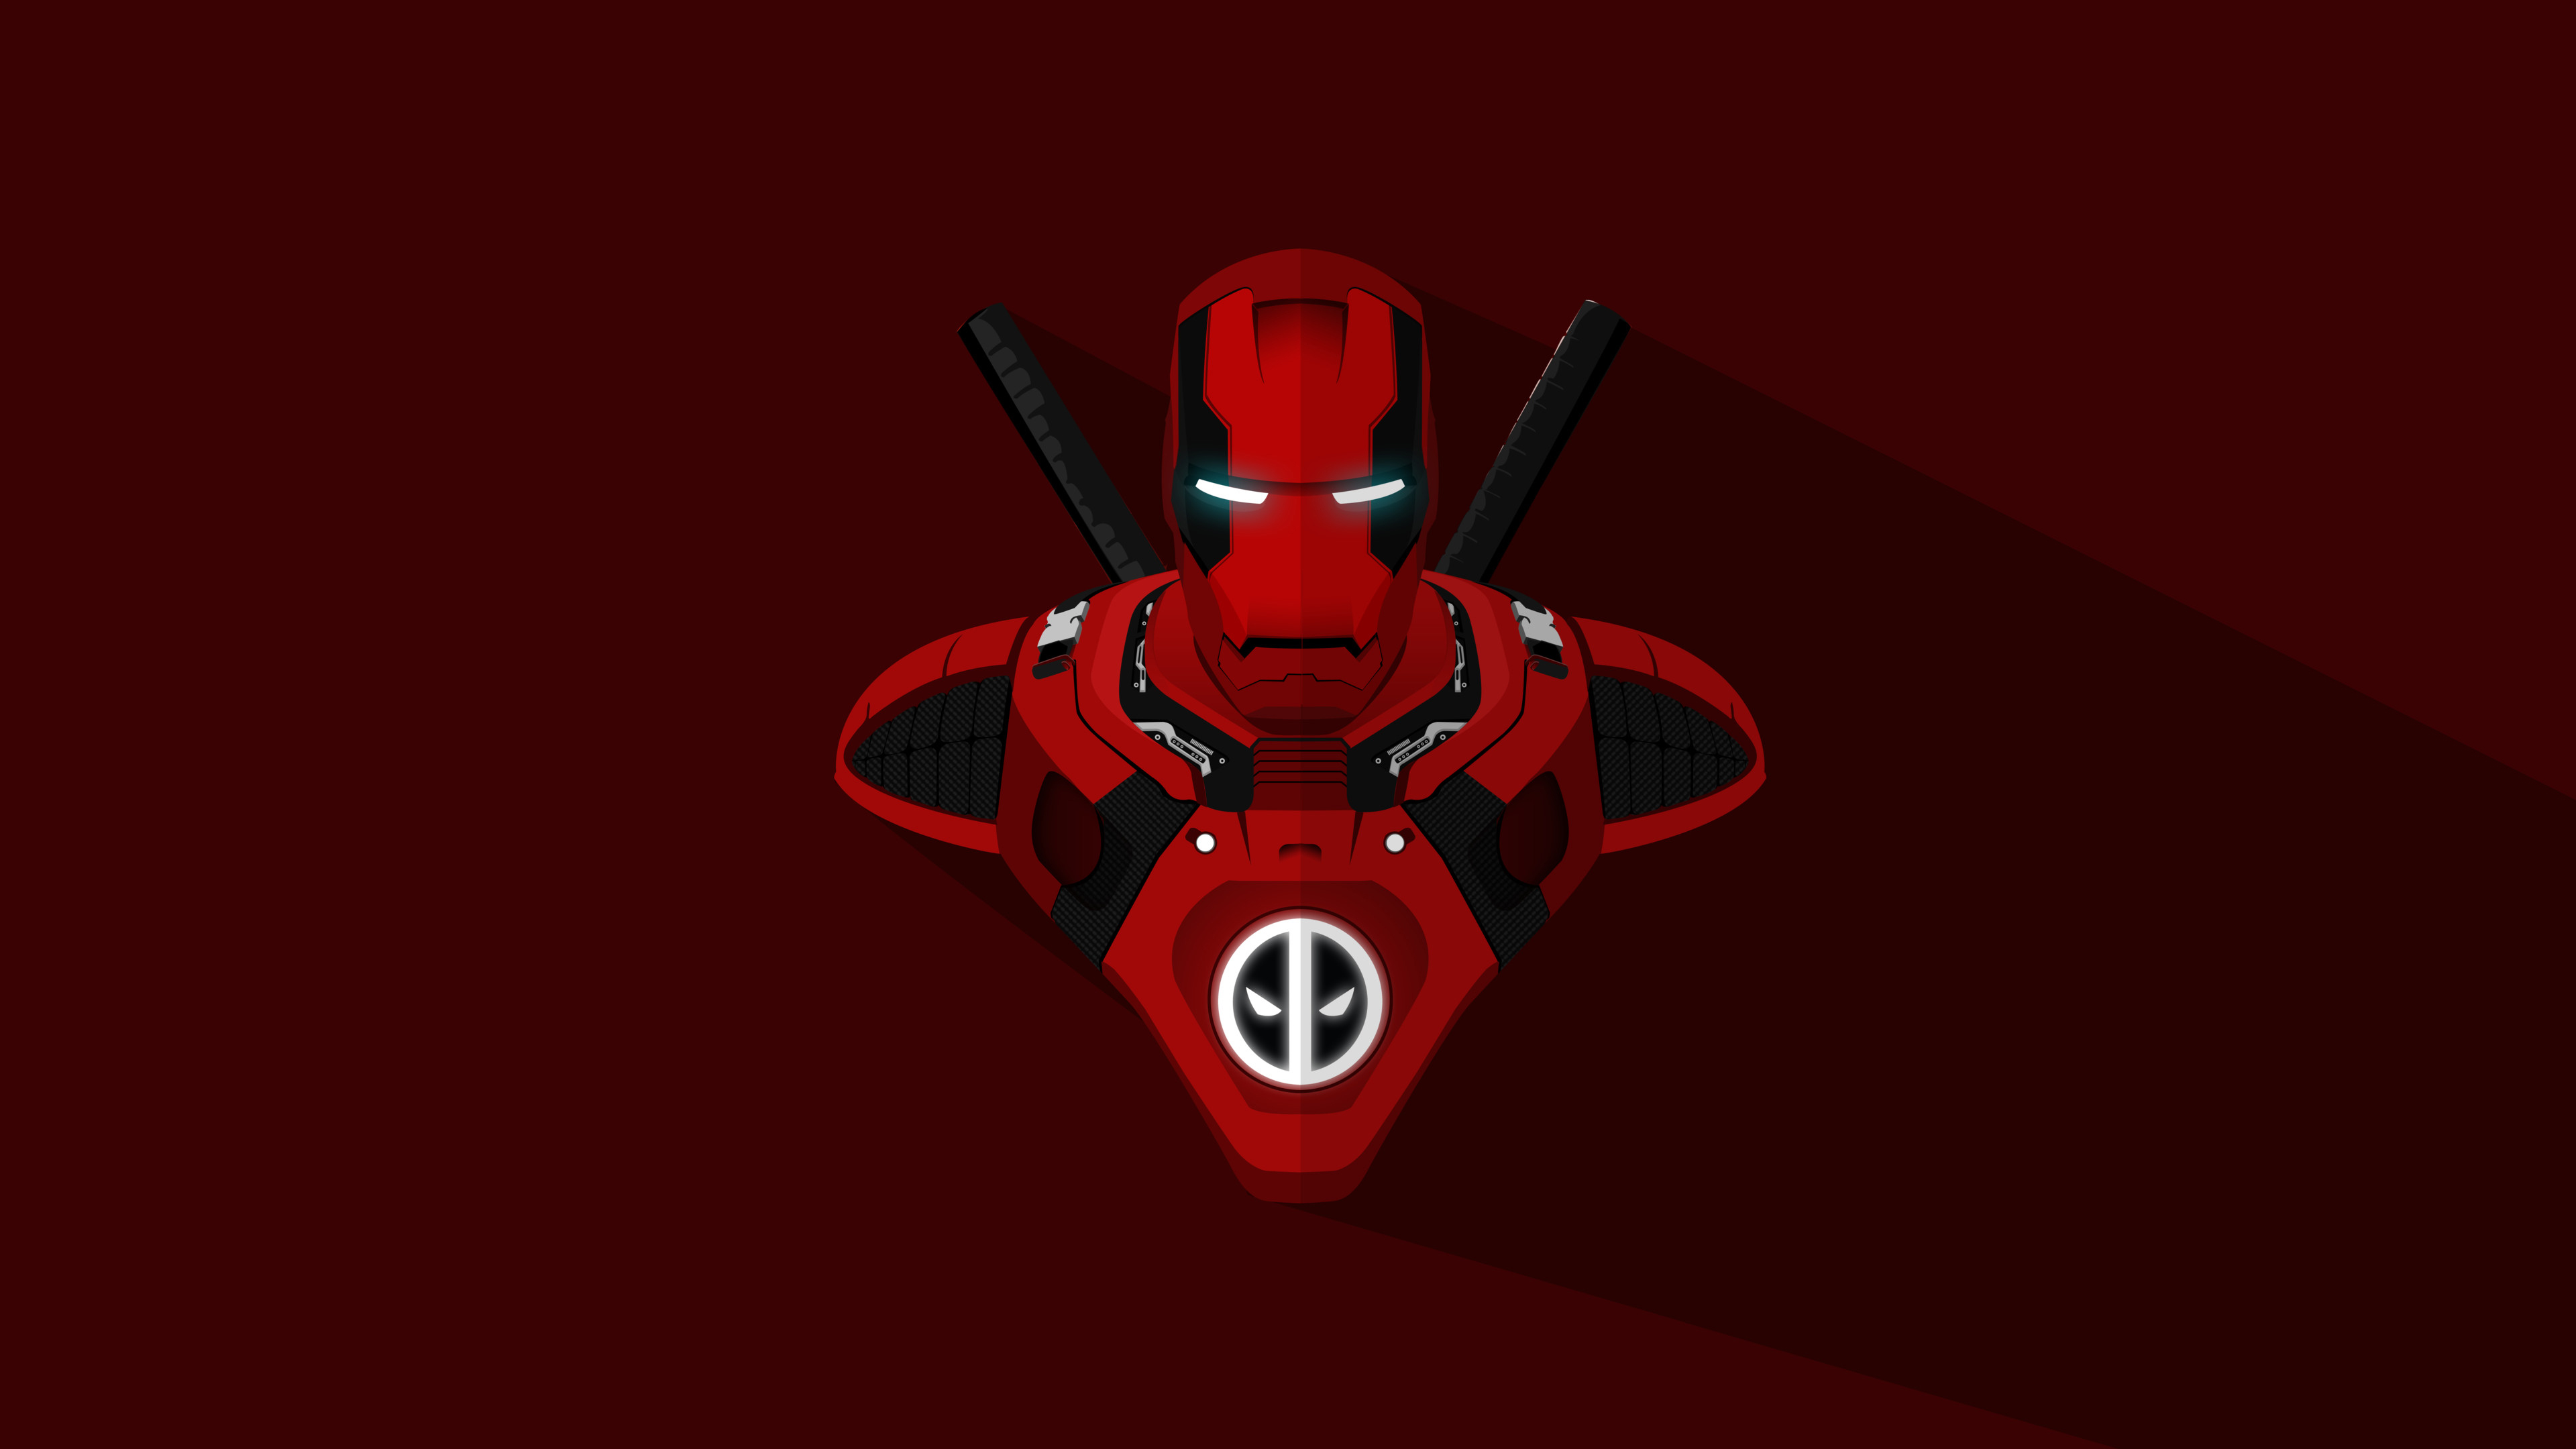 Iron Man Deadpool Crossover 4k Wallpapers Hd Wallpapers